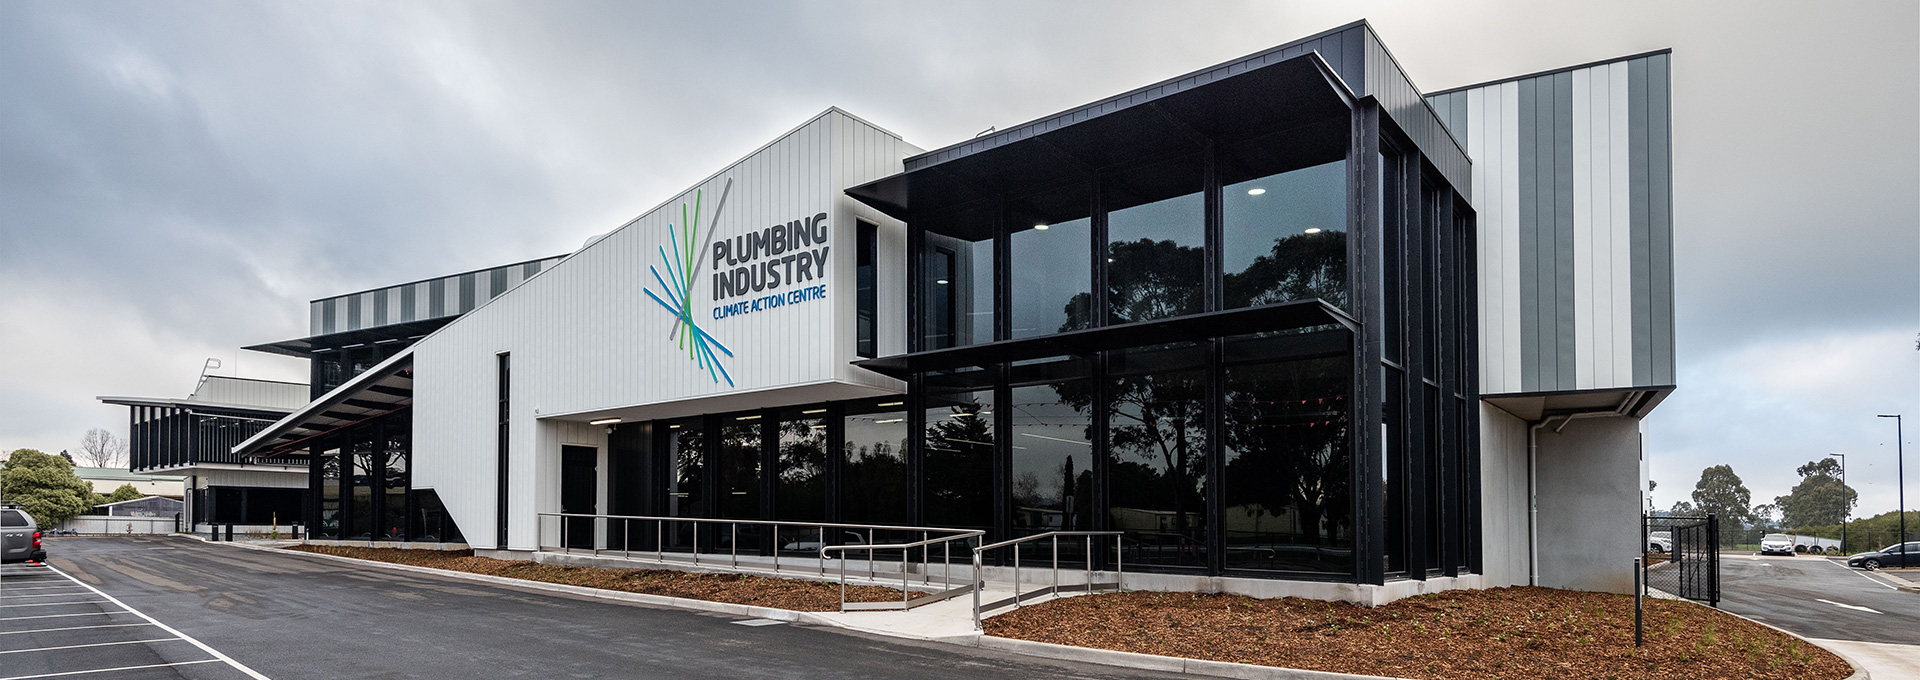 Plumbing Industry Climate Control Centre